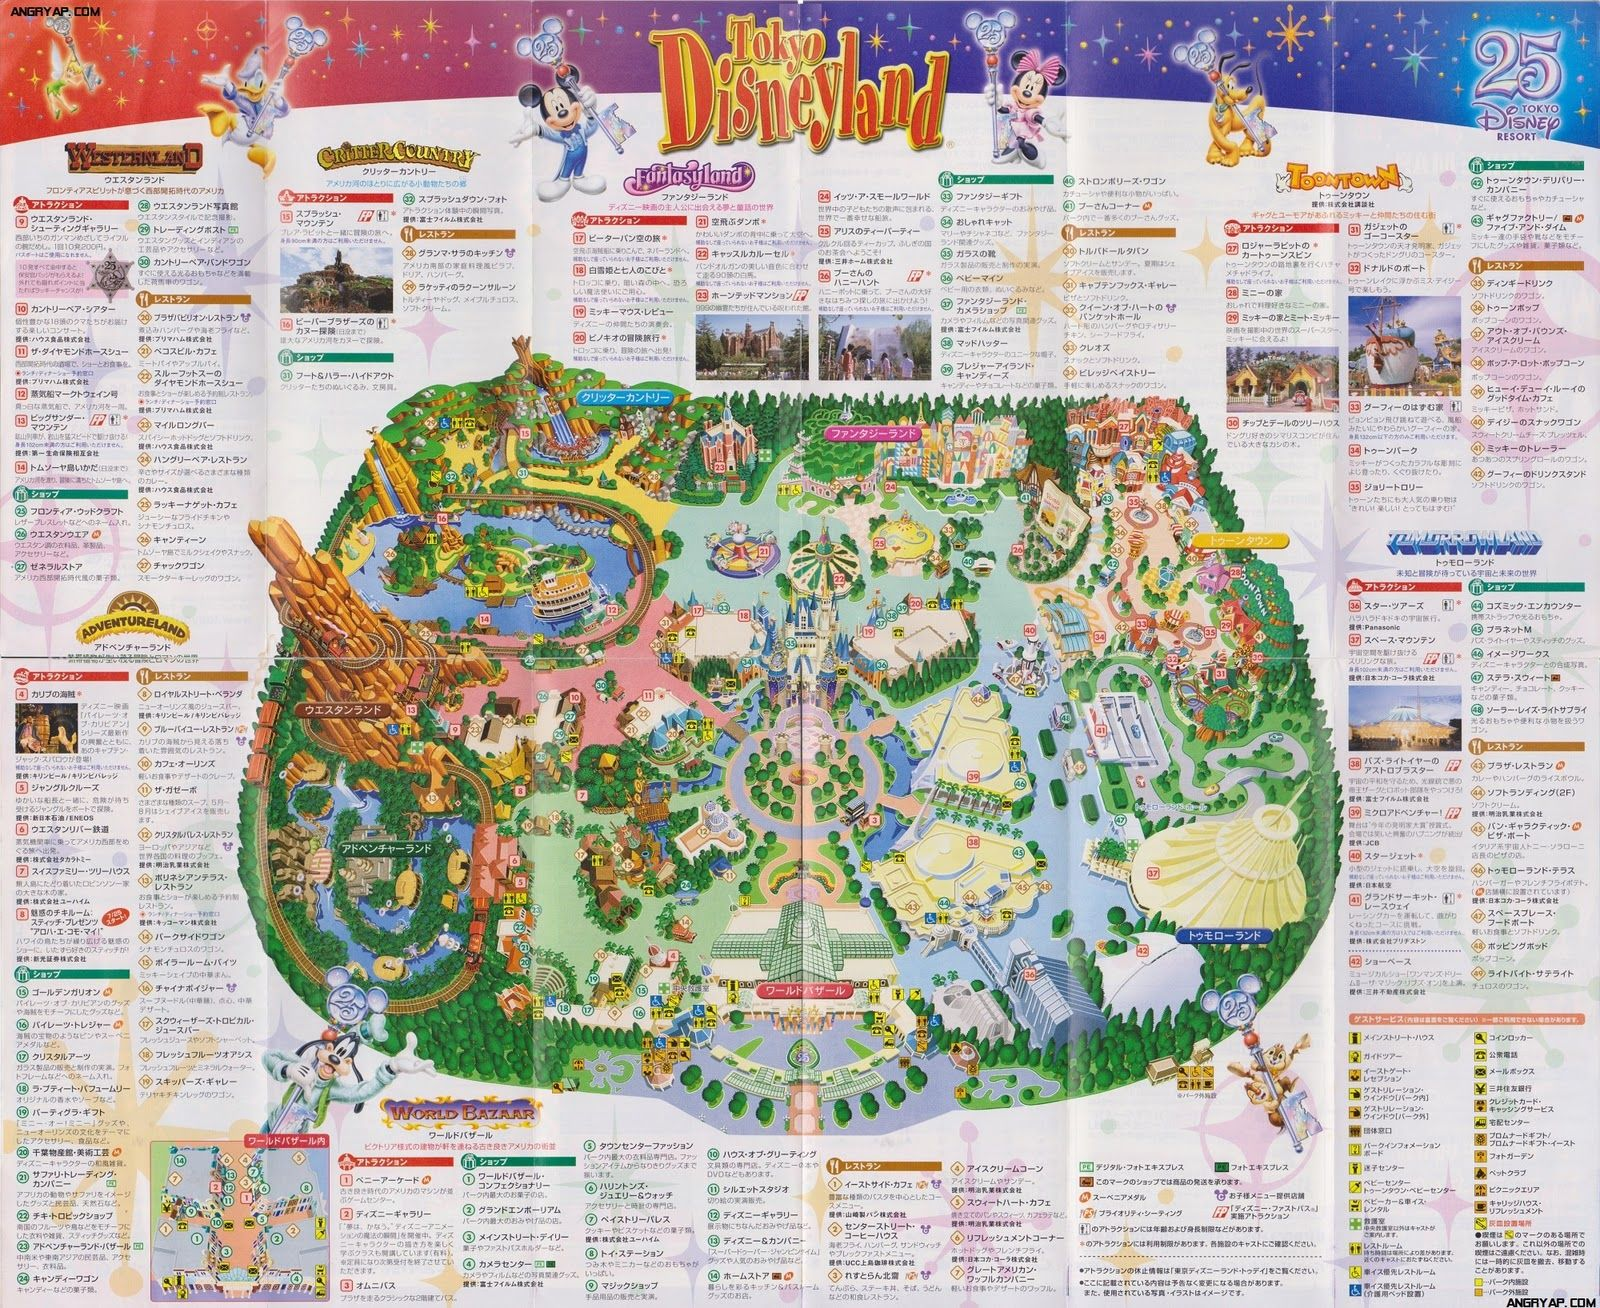 Angry ap disneyland and walt disney world nostalgia tokyo angry ap disneyland and walt disney world nostalgia tokyo disneyland guide map from 2008 gumiabroncs